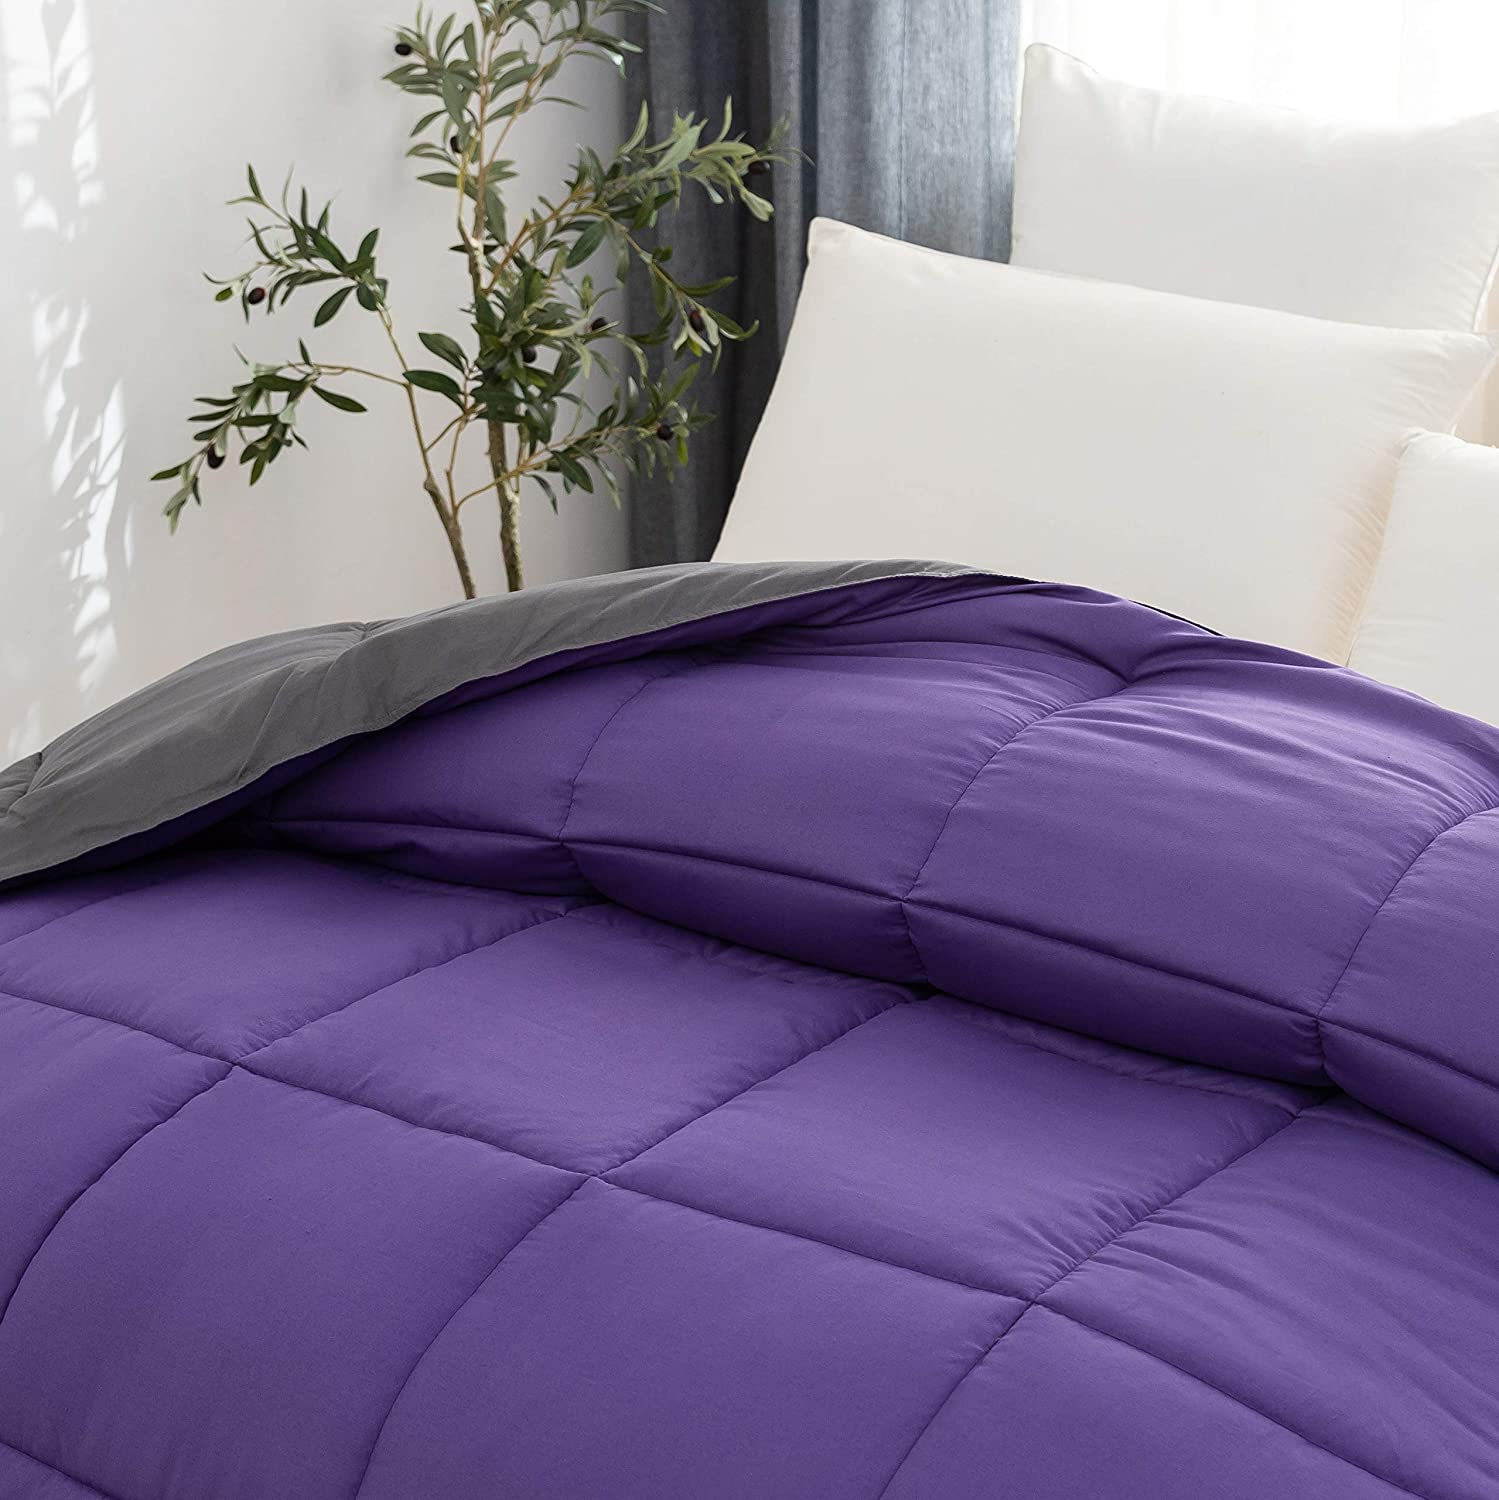 Bedding Home & Kitchen AYASW Microfiber Comforter Queen Size for ...